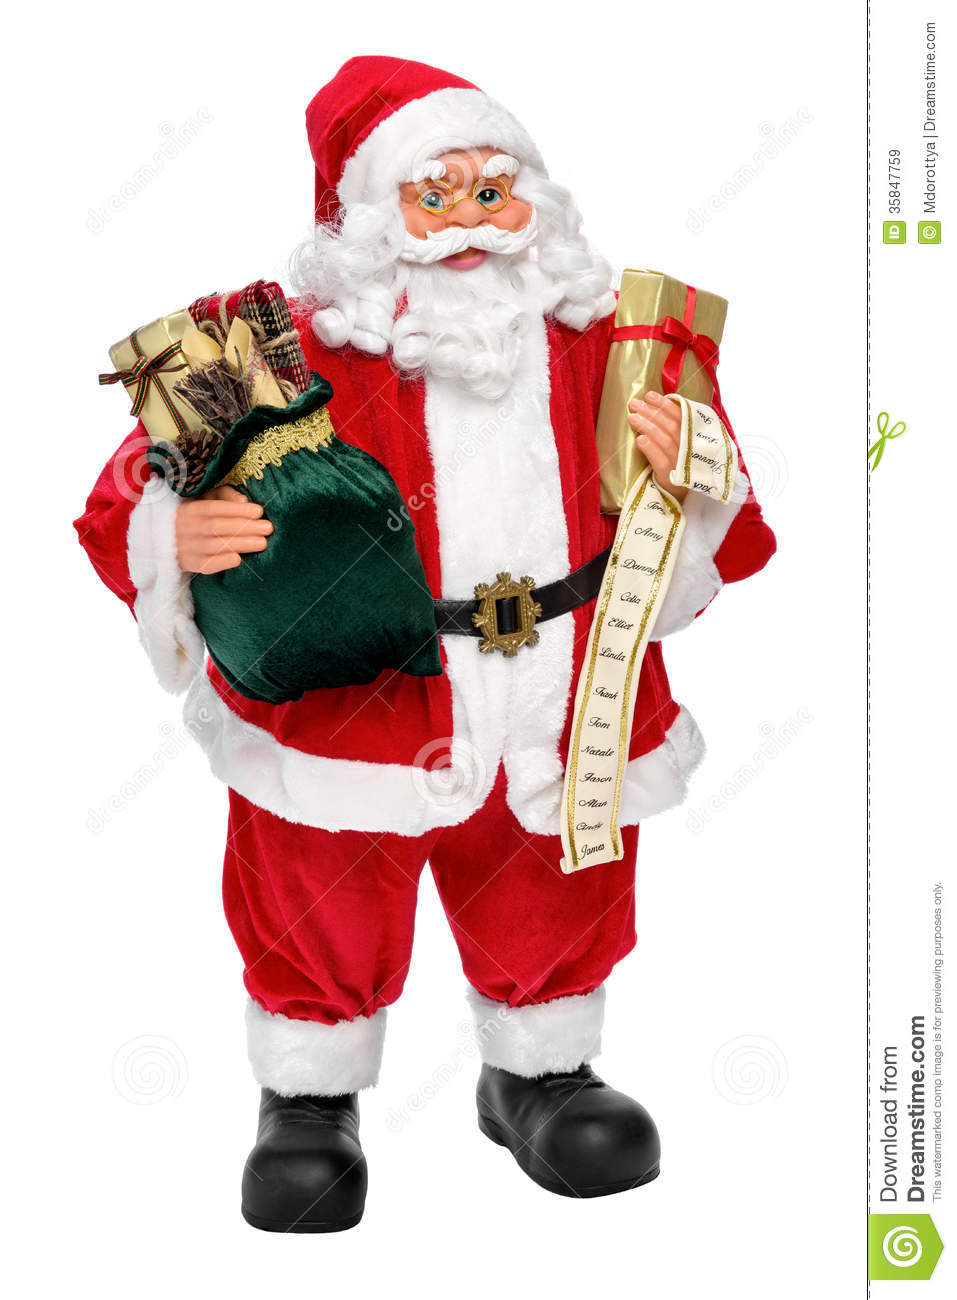 santa claus doll with presents and name list royalty free